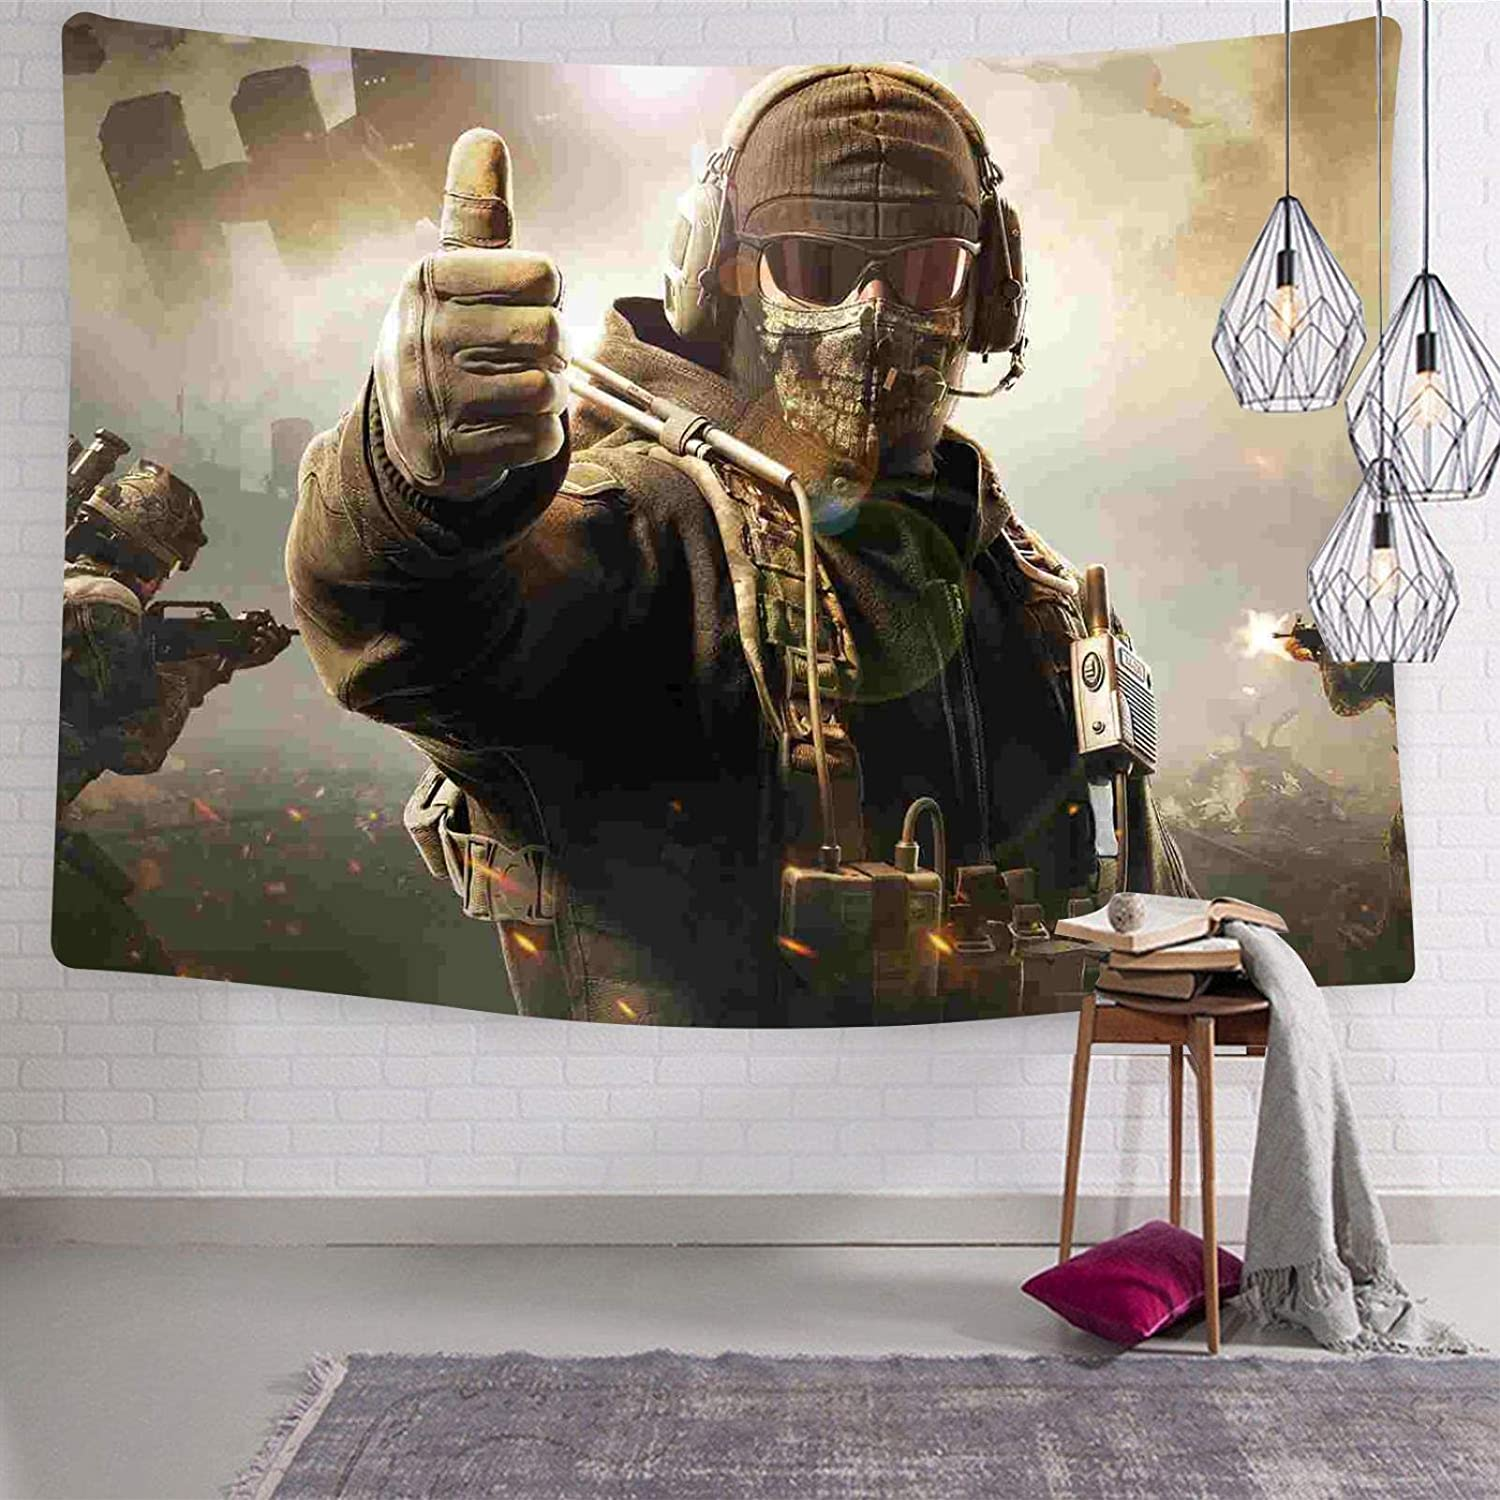 3. Call of Duty 3D Wall Hanging Tapestries